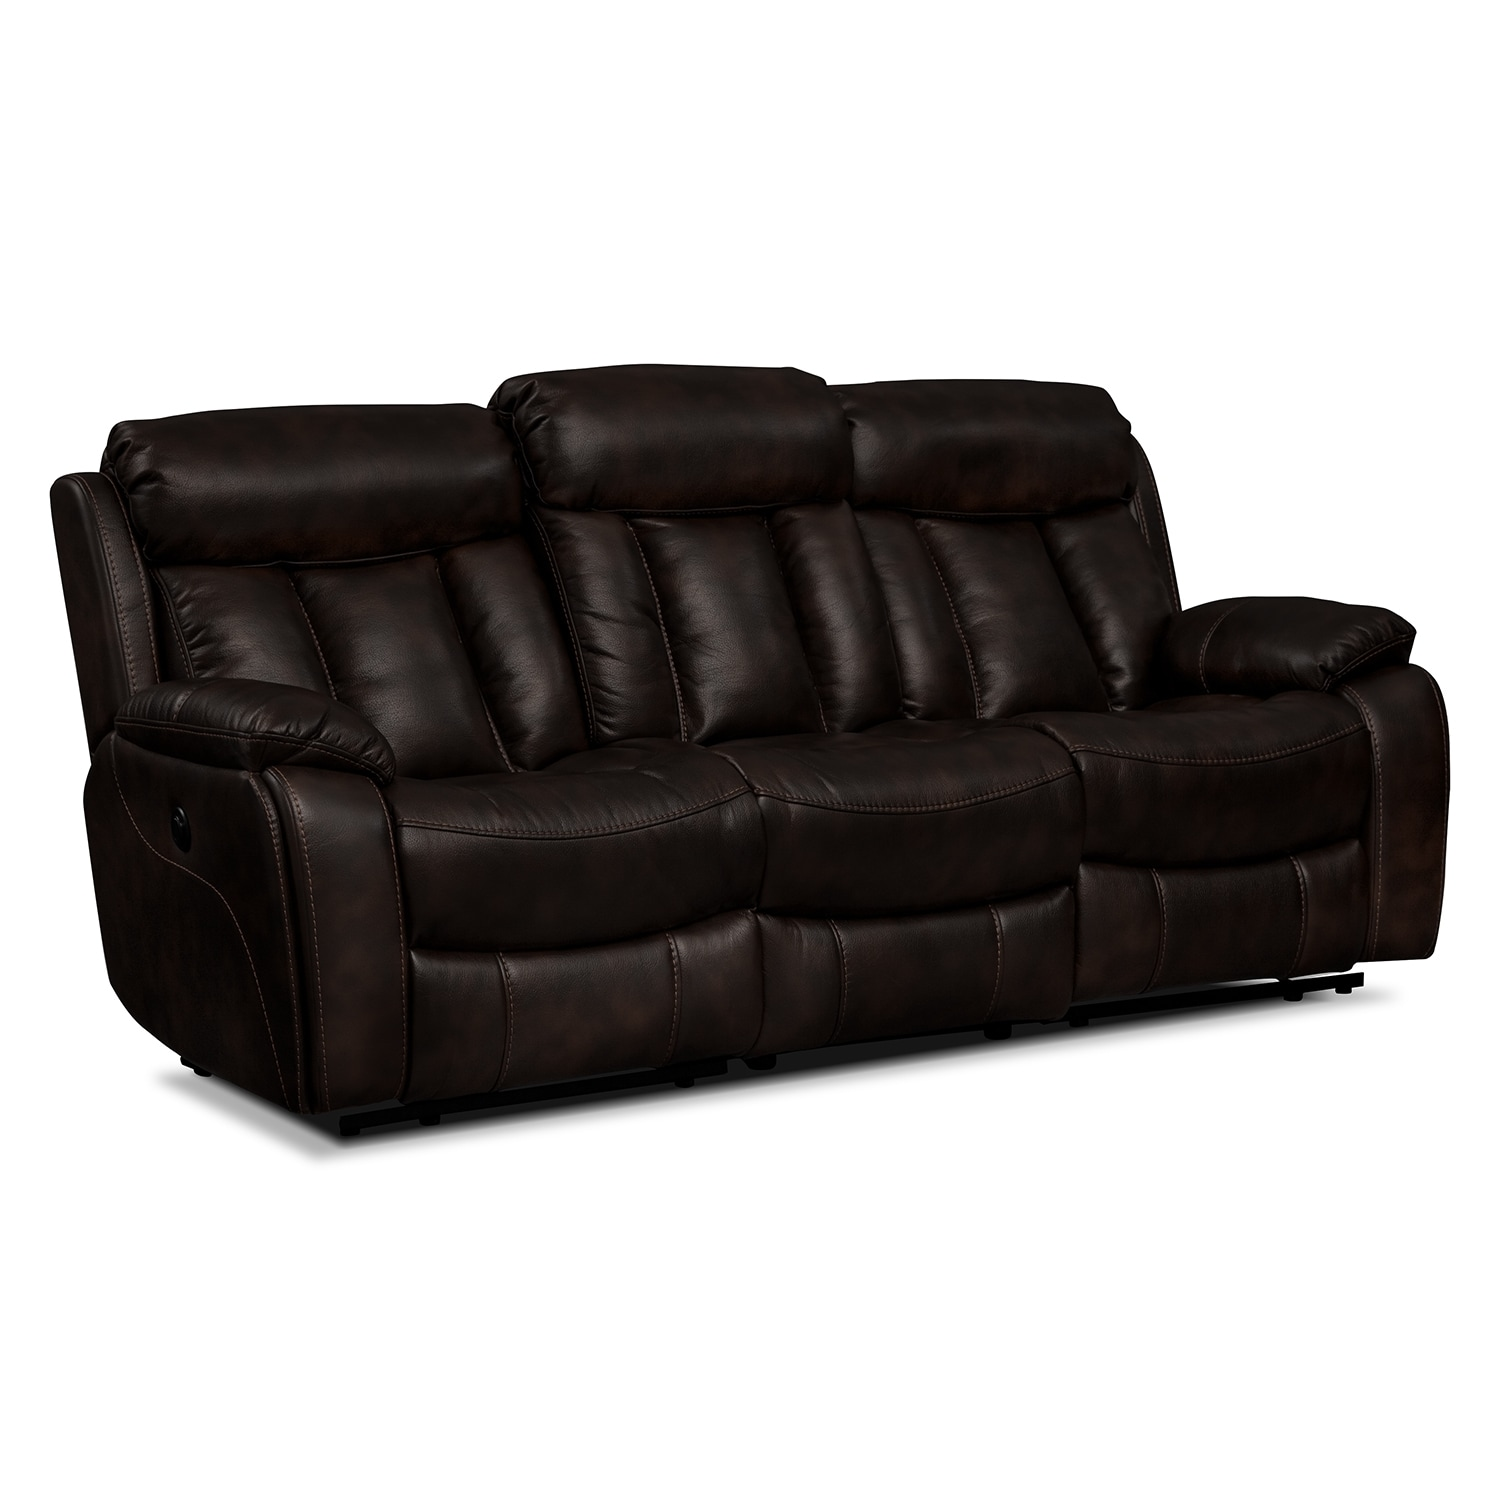 Living Room Furniture - Diablo Power Reclining Sofa - Walnut